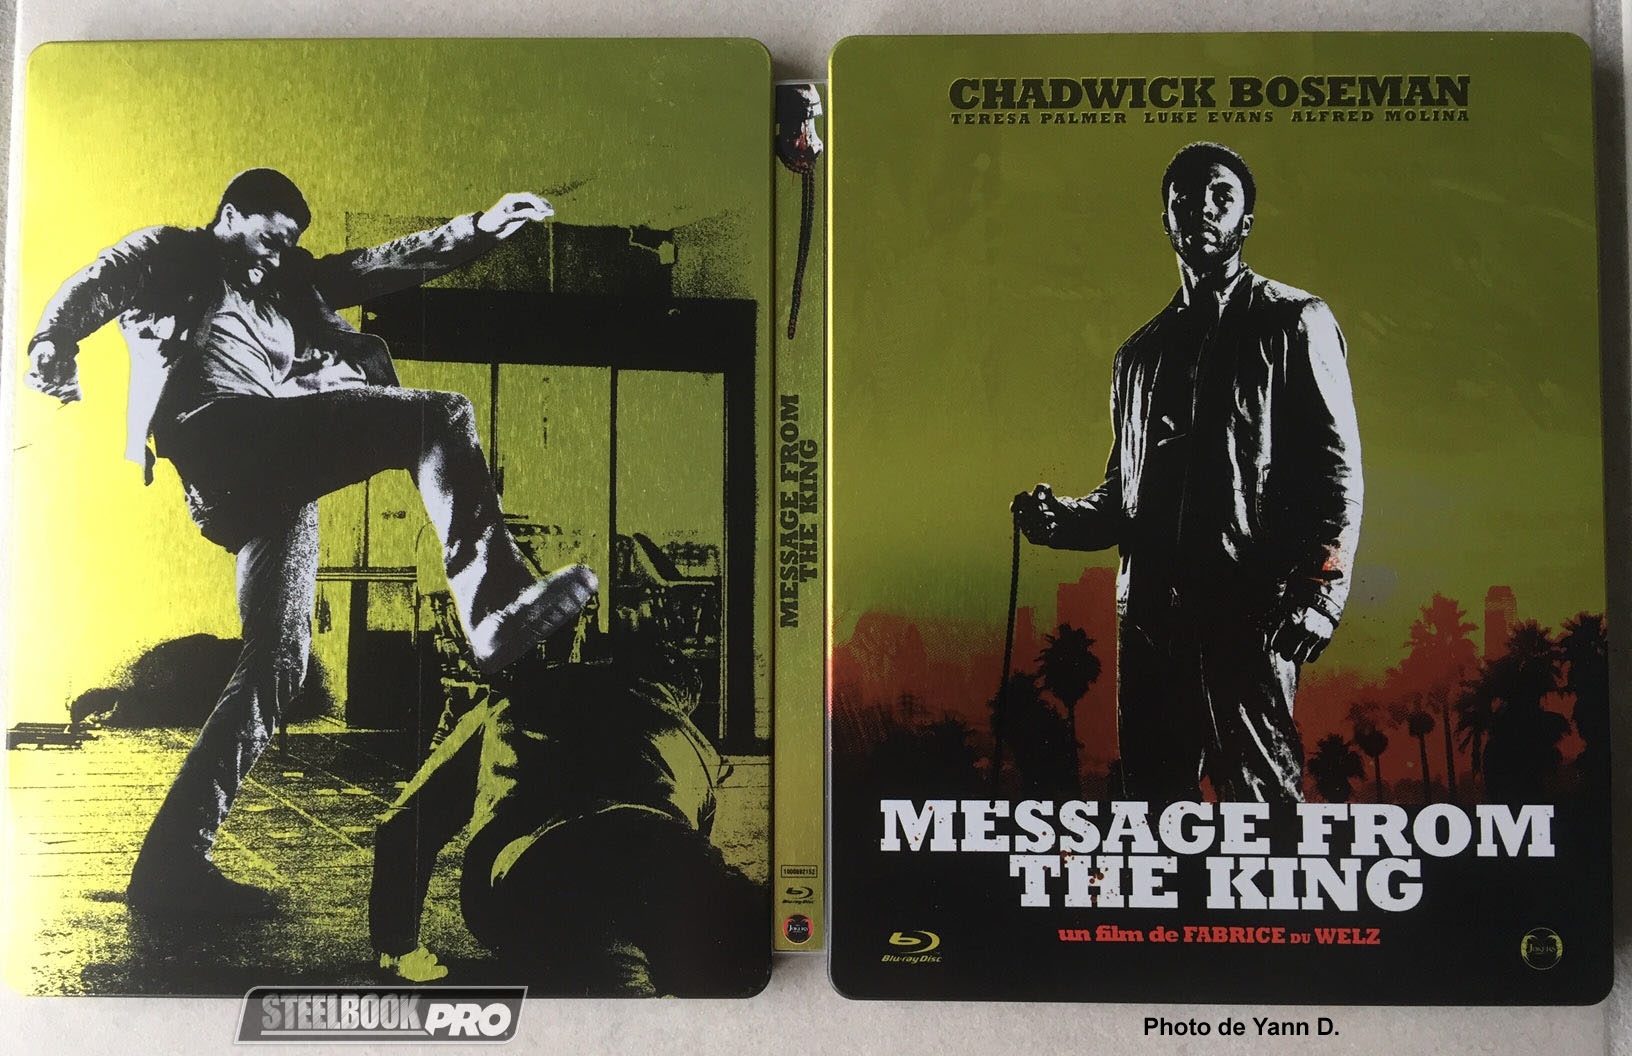 Message-from-the-king-steelbook4